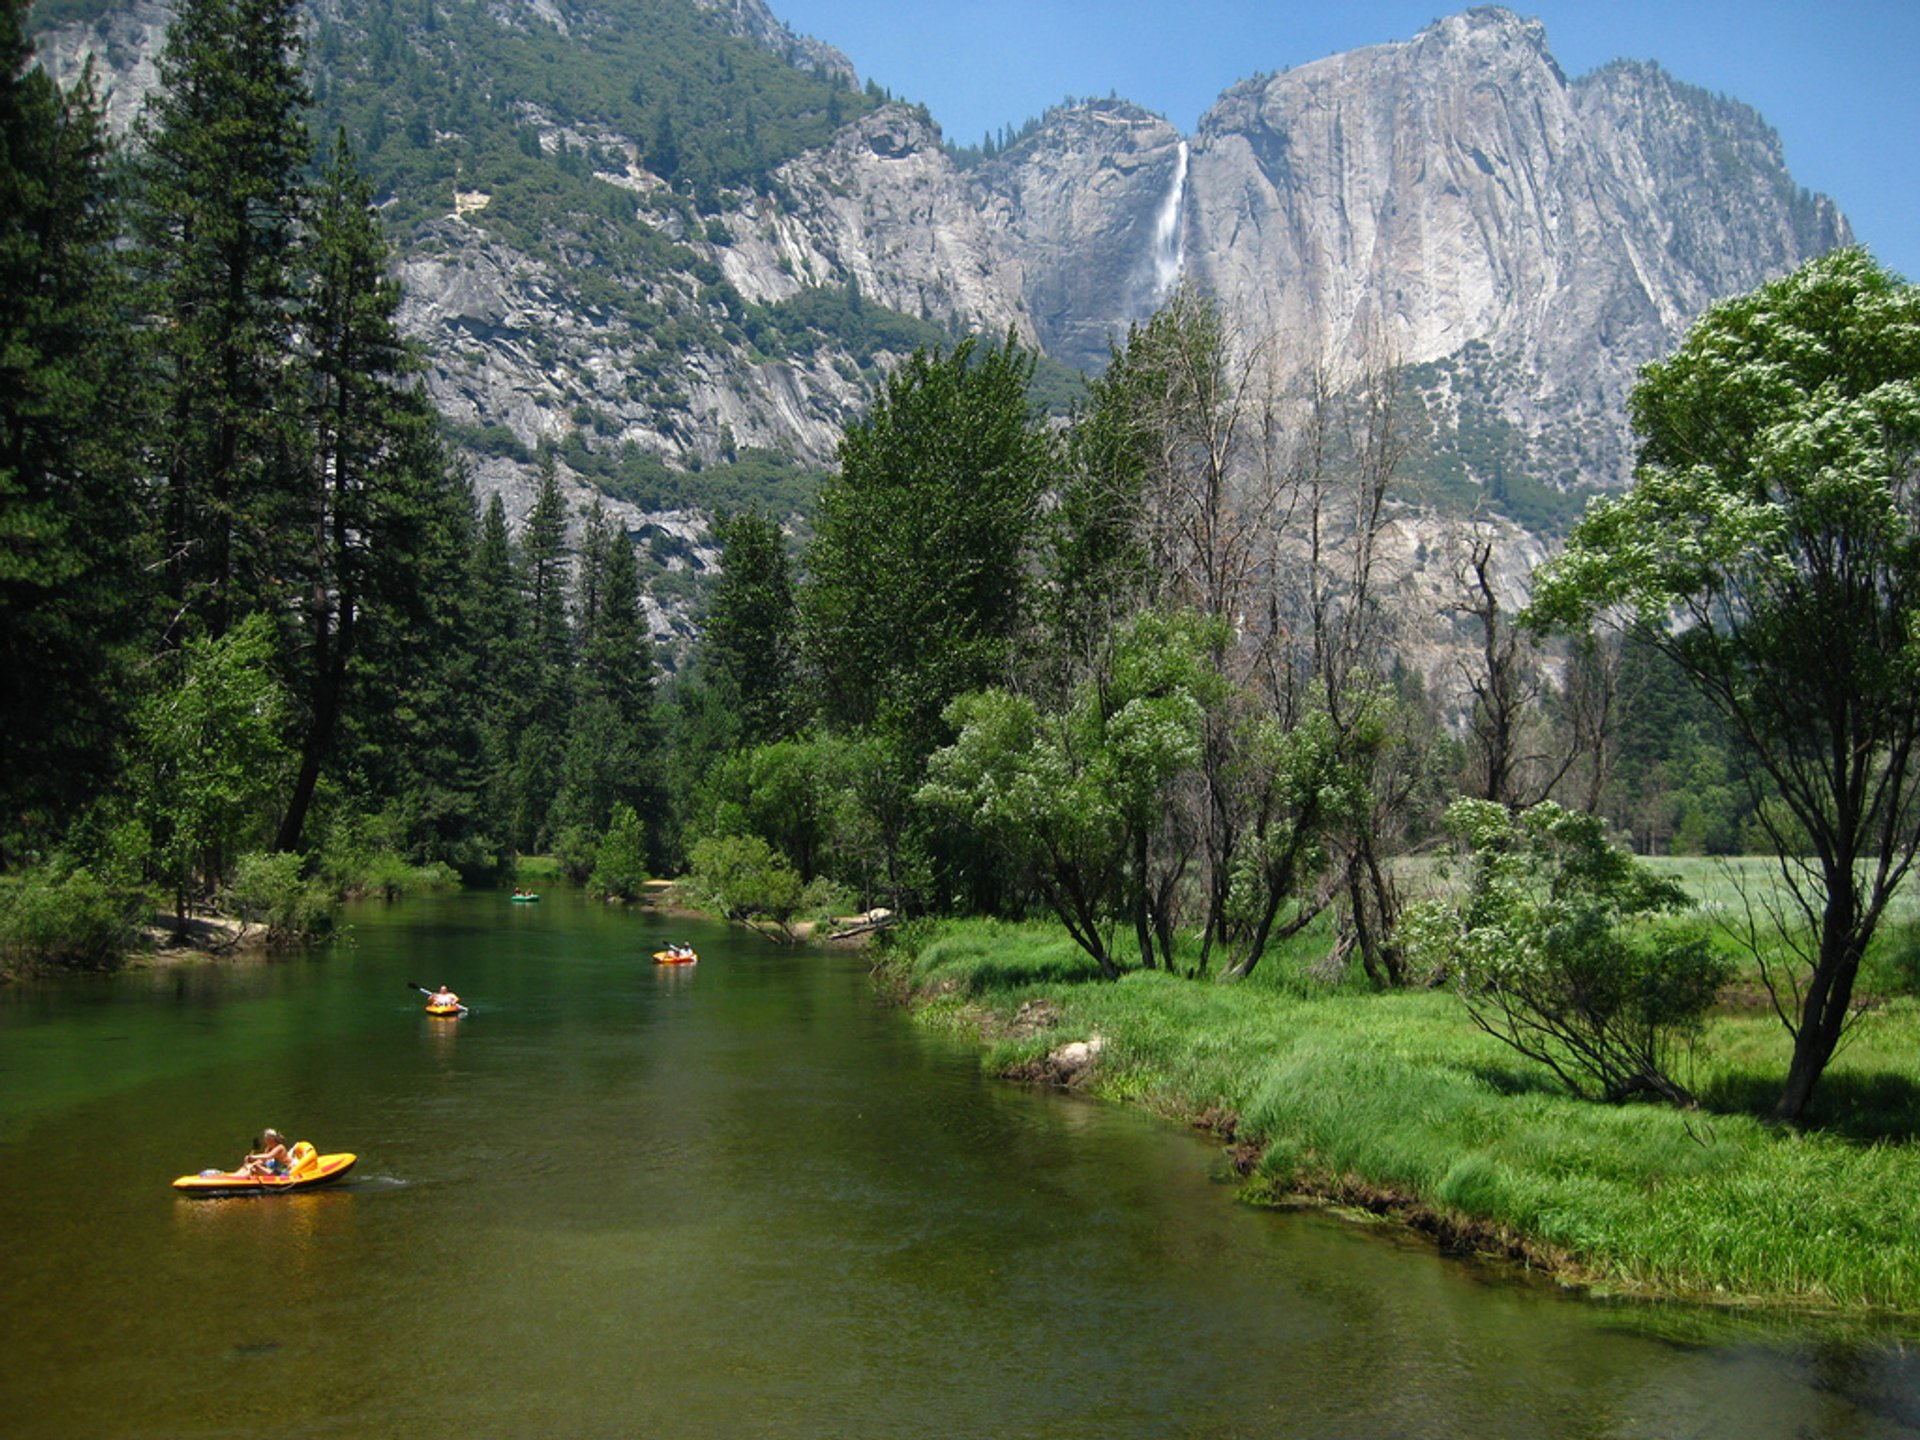 Kayaking and Canoeing the Merced River in Yosemite - Best Season 2019